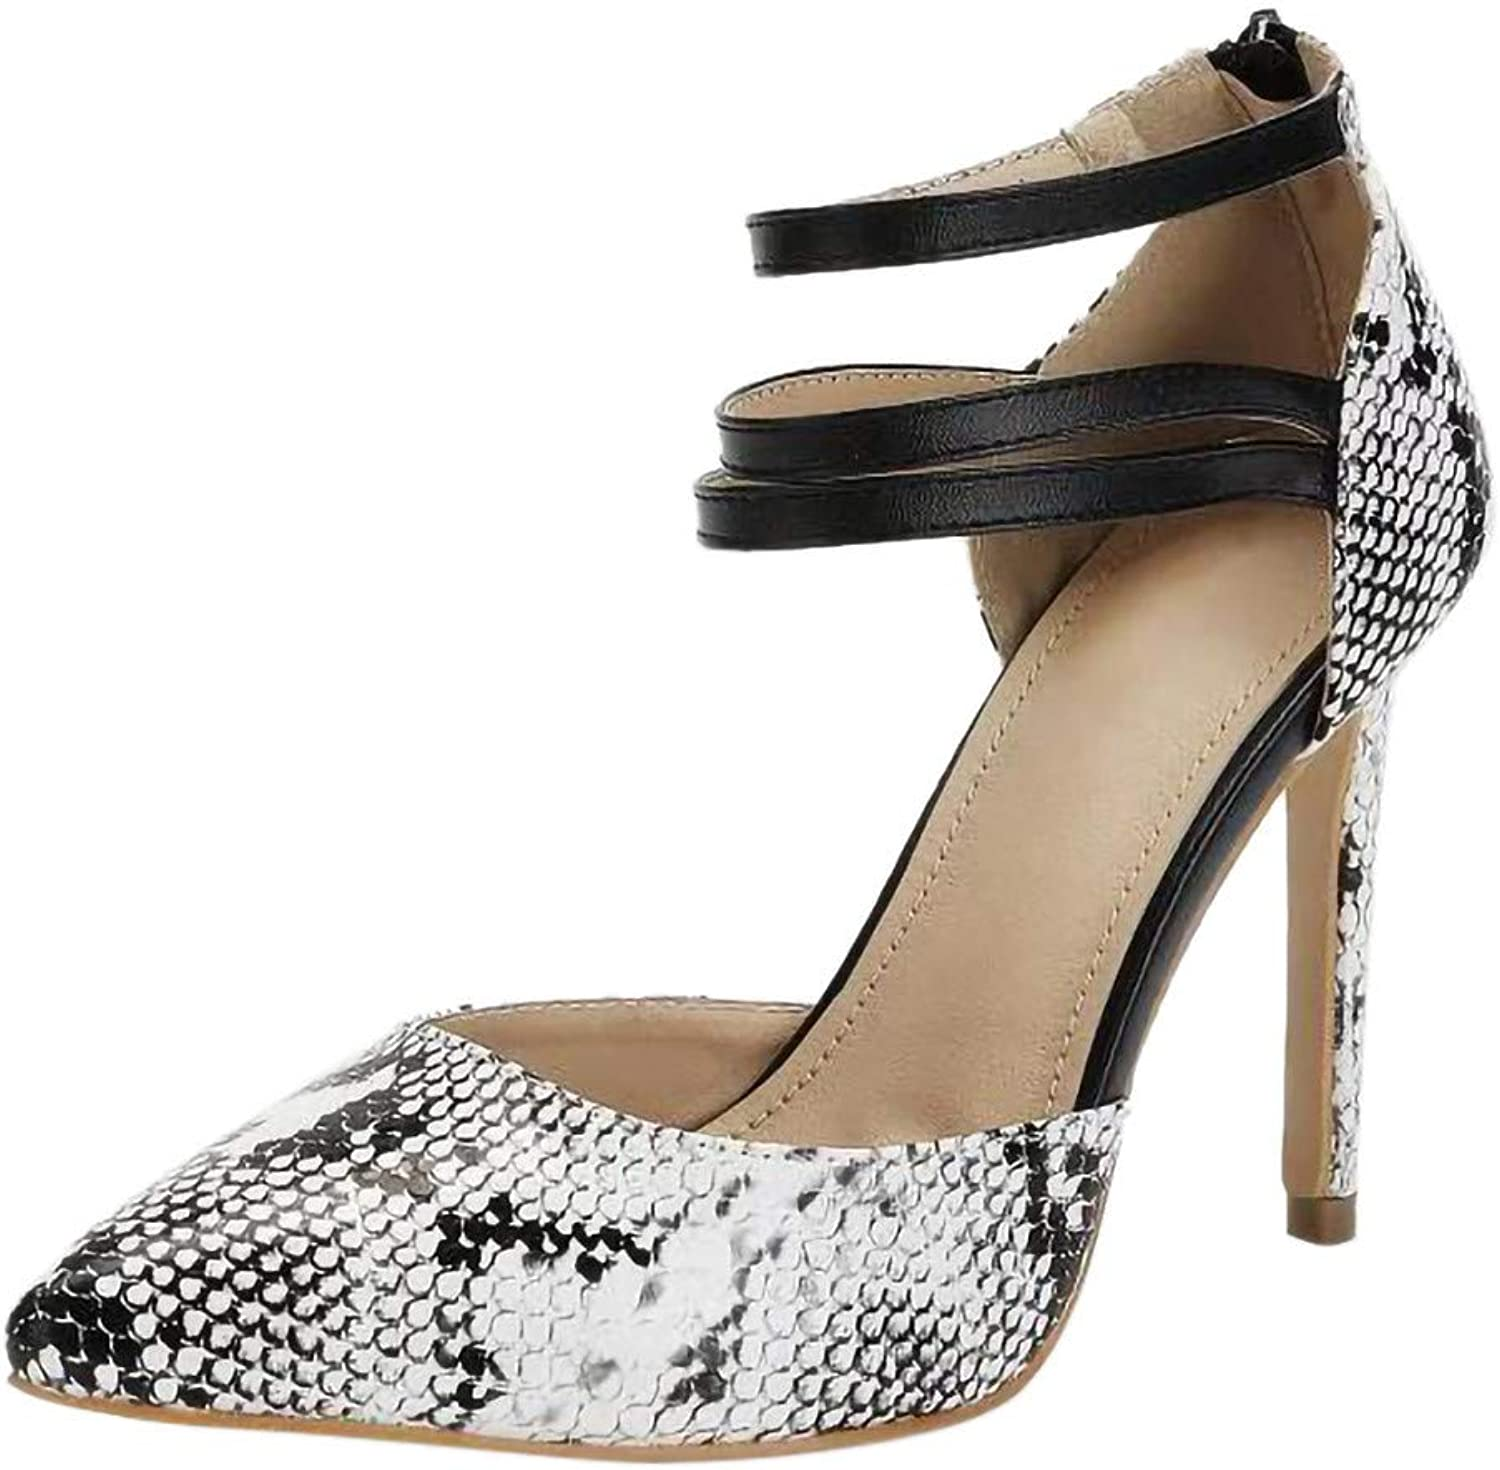 Theshy Sexy Women Pointed Toe Snake Skin Pattern Foot Ring High Heel shoes Pumps Sandals